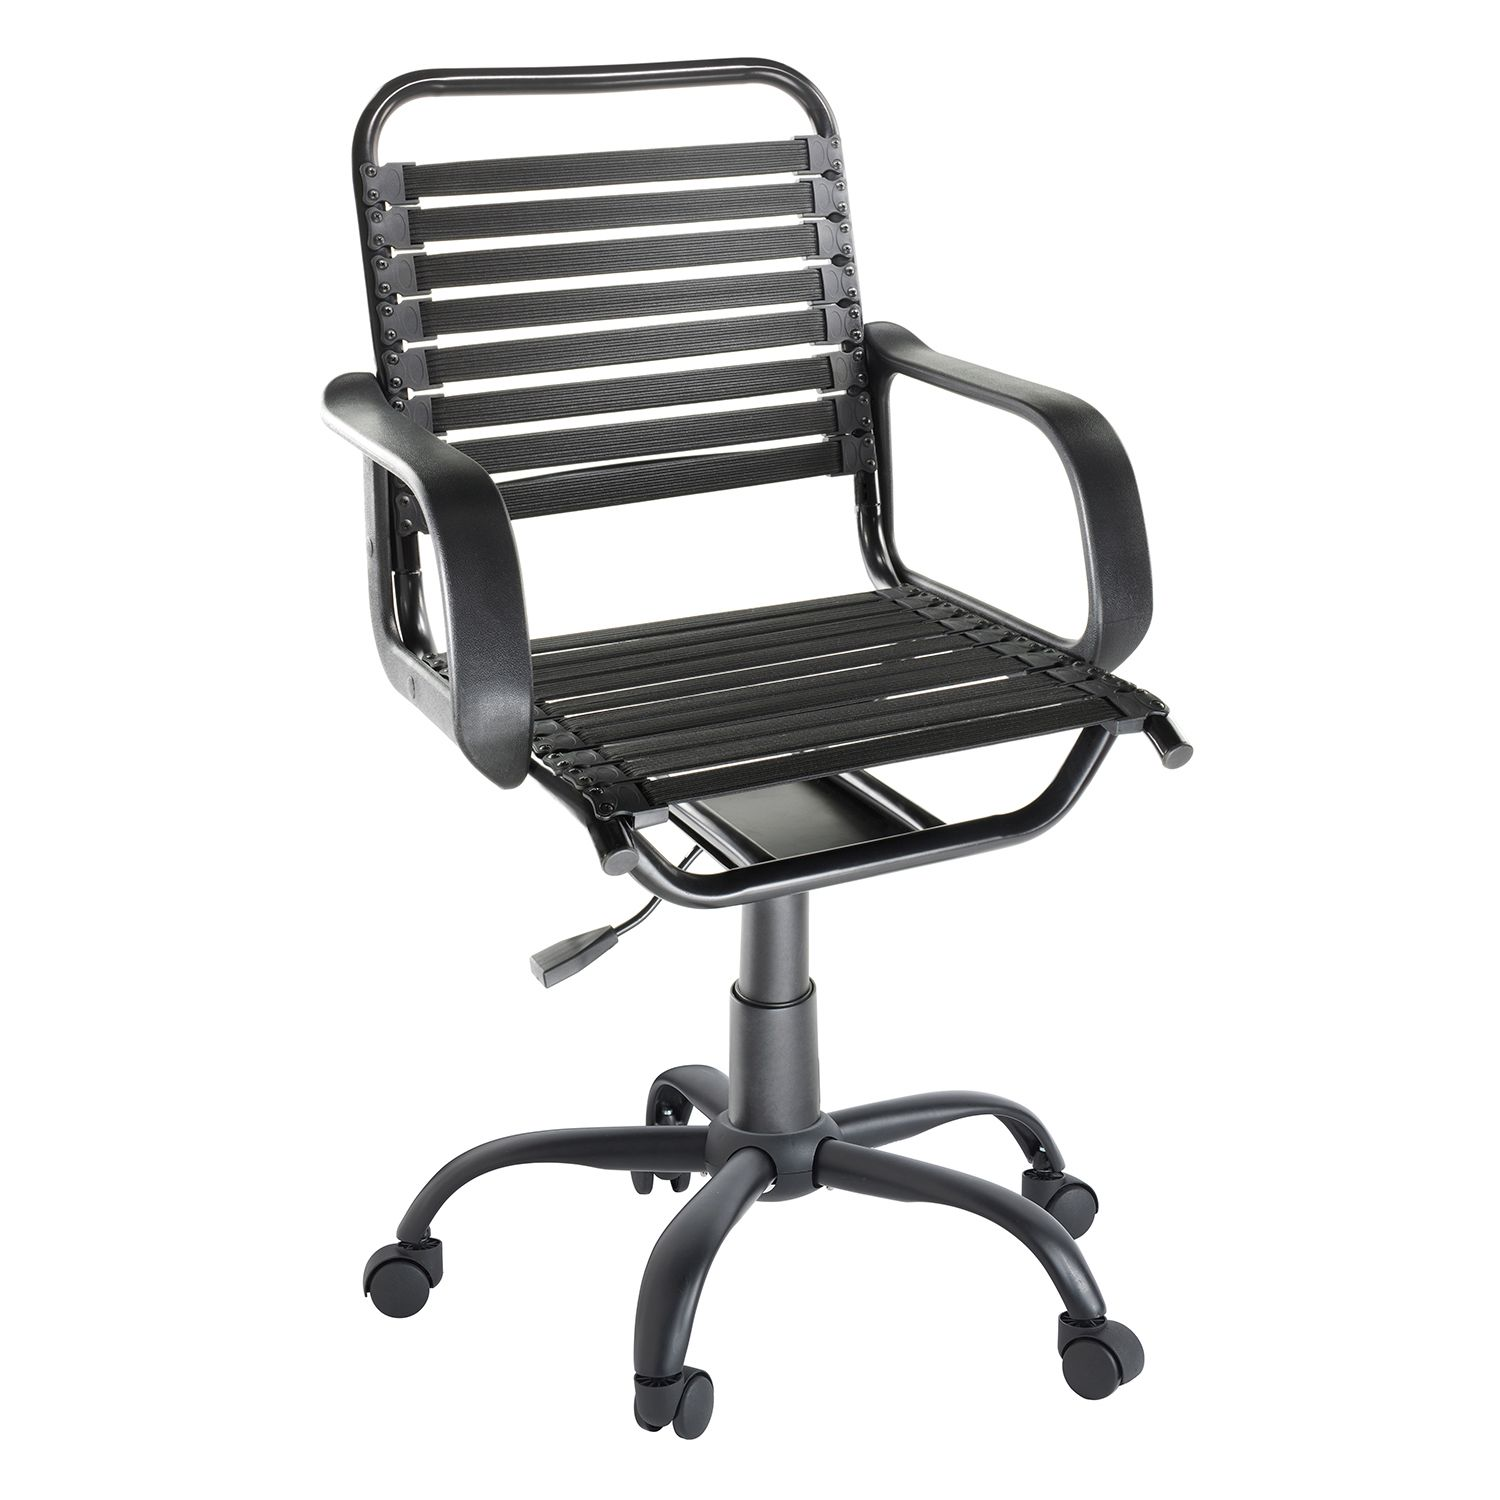 Attrayant Simple By Design Bungee Desk Chair